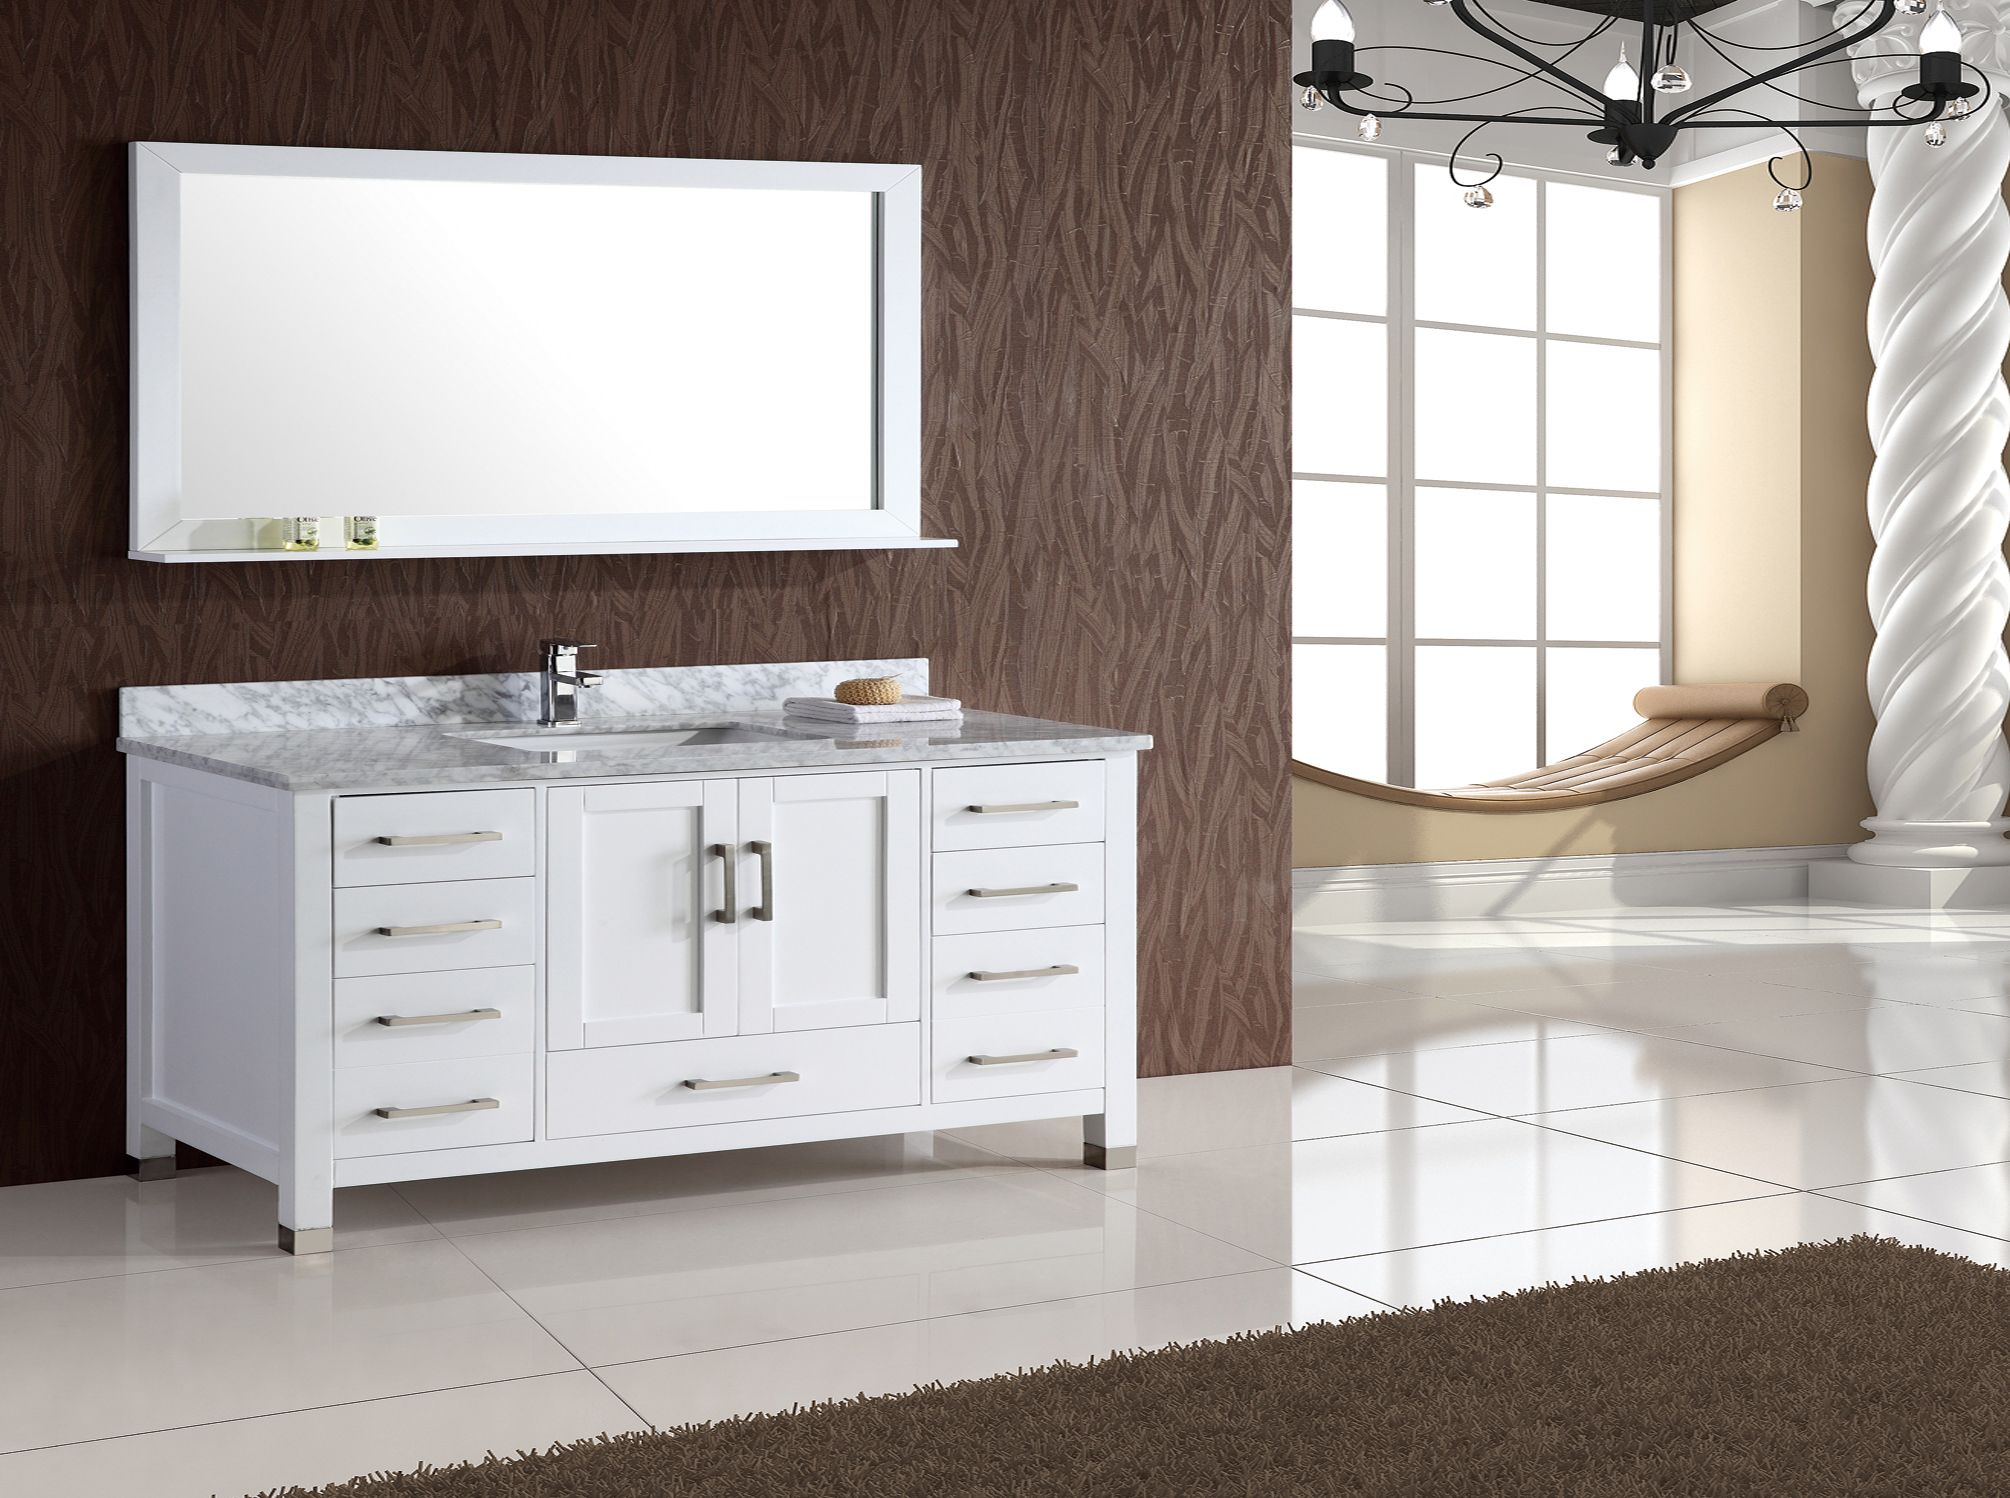 lune imports double to contemporary bathroom cabinets jwh regard for vanity sink white with grand modern home vessel amazing single vanities attractive depot